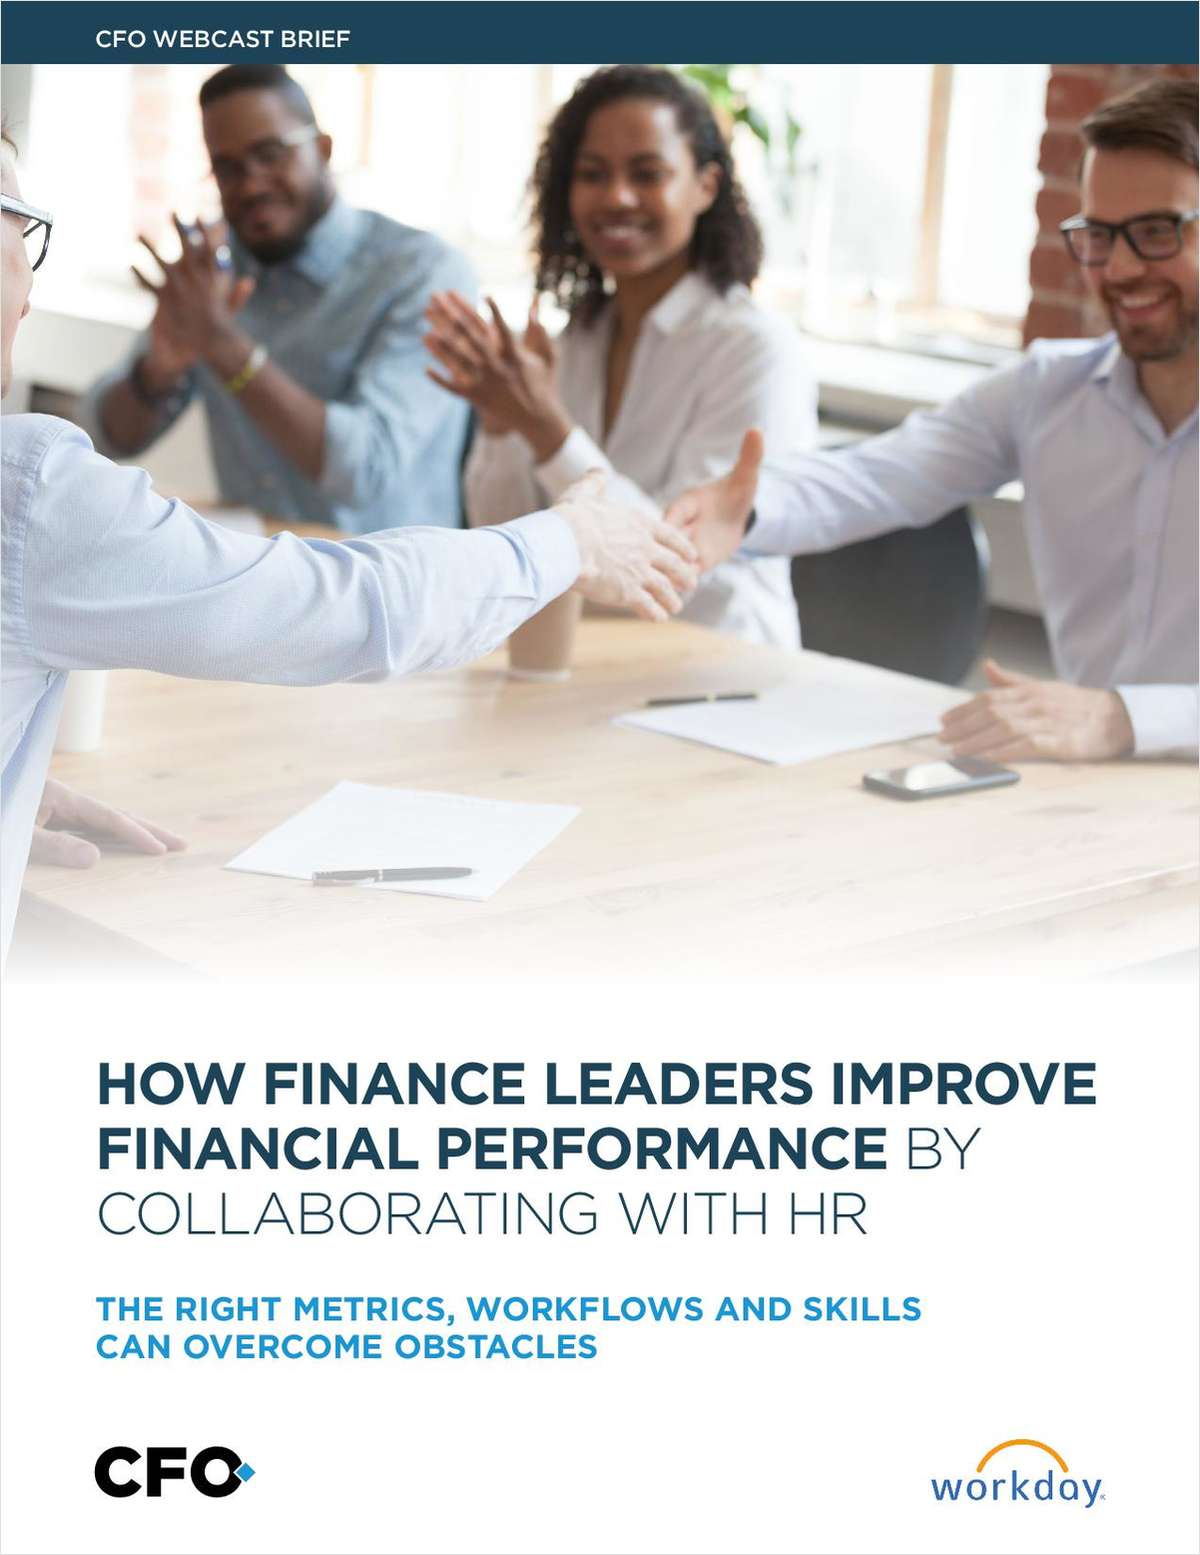 How Finance Leaders Improve Financial Performance by Collaborating with HR